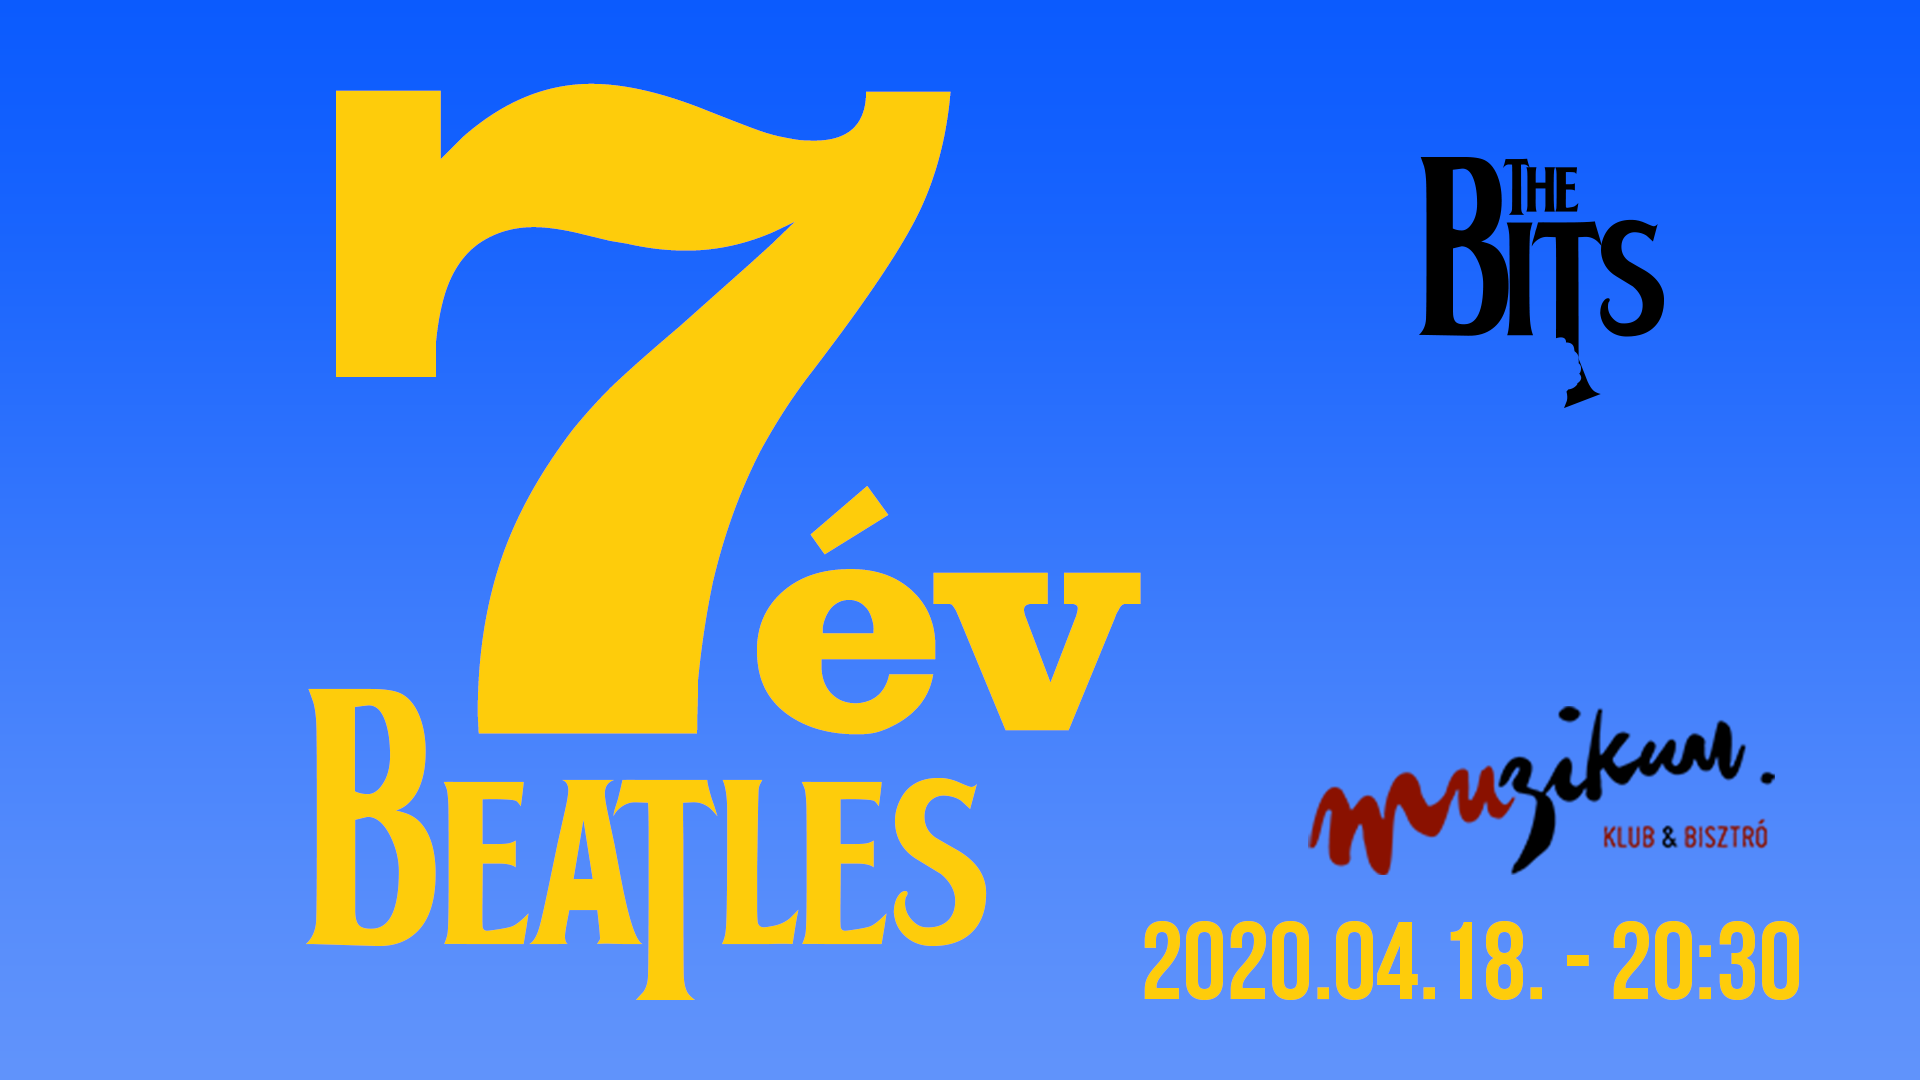 7 év Beatles a The Bits-szel